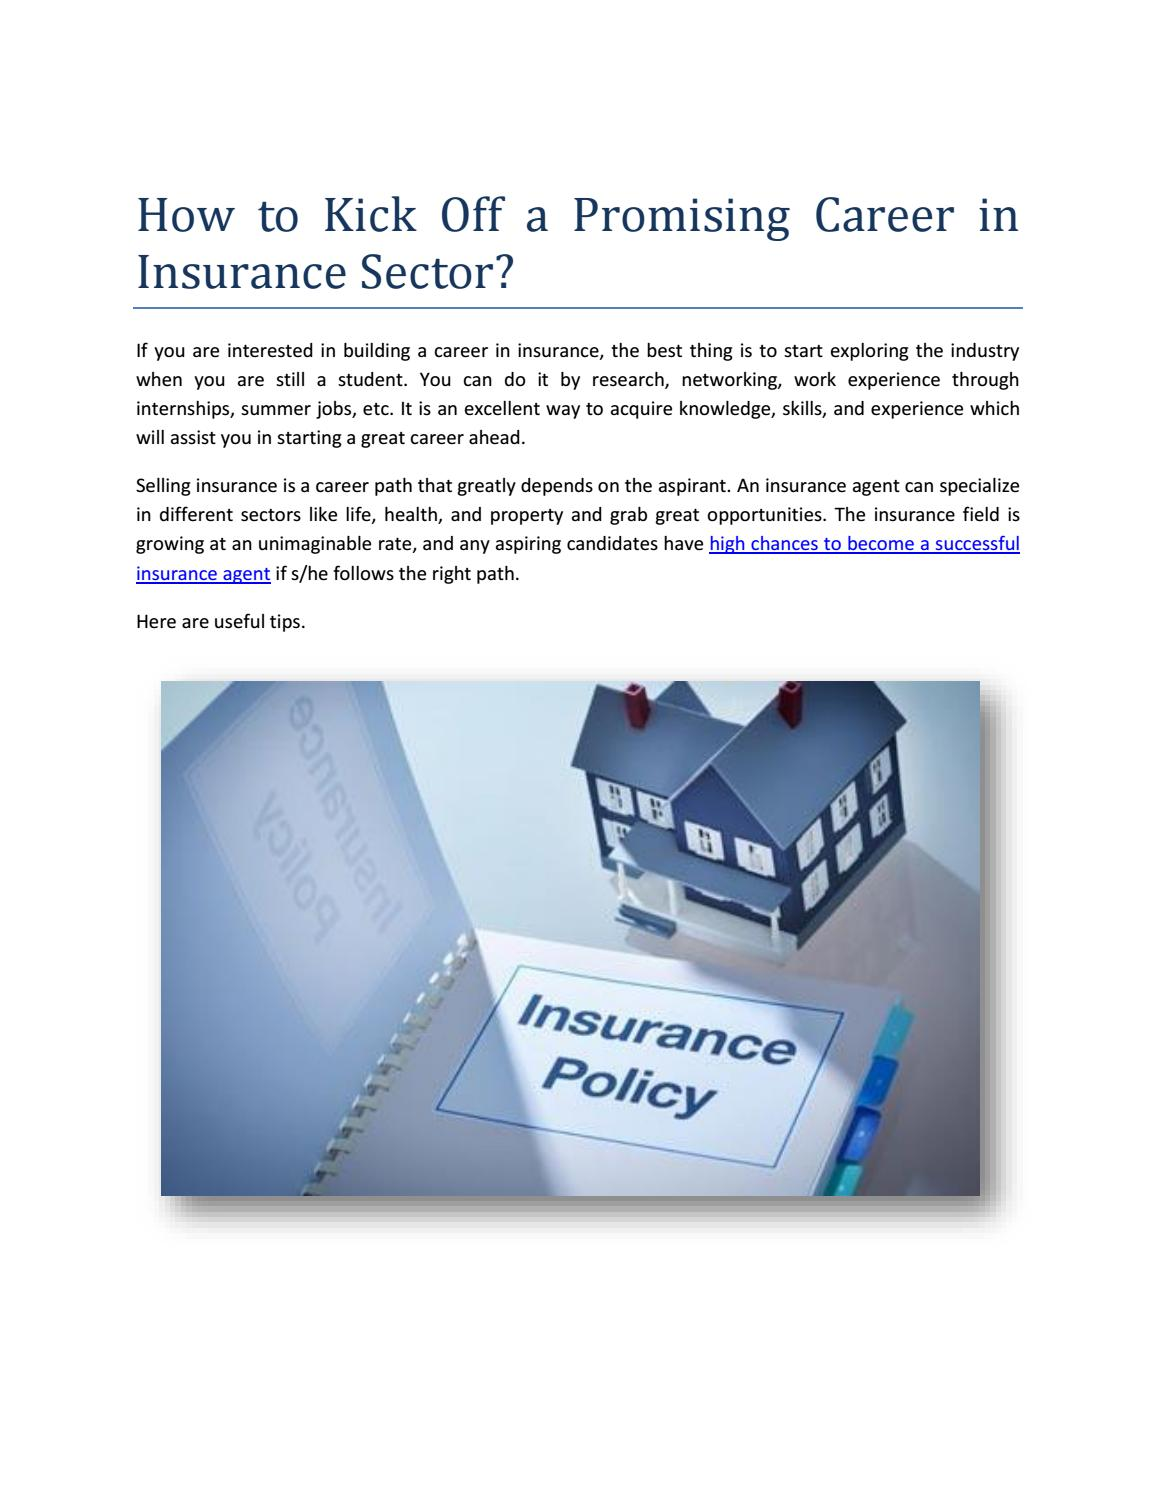 How To Kick Off A Promising Career In Insurance Sector By Mtaylor0083 Issuu